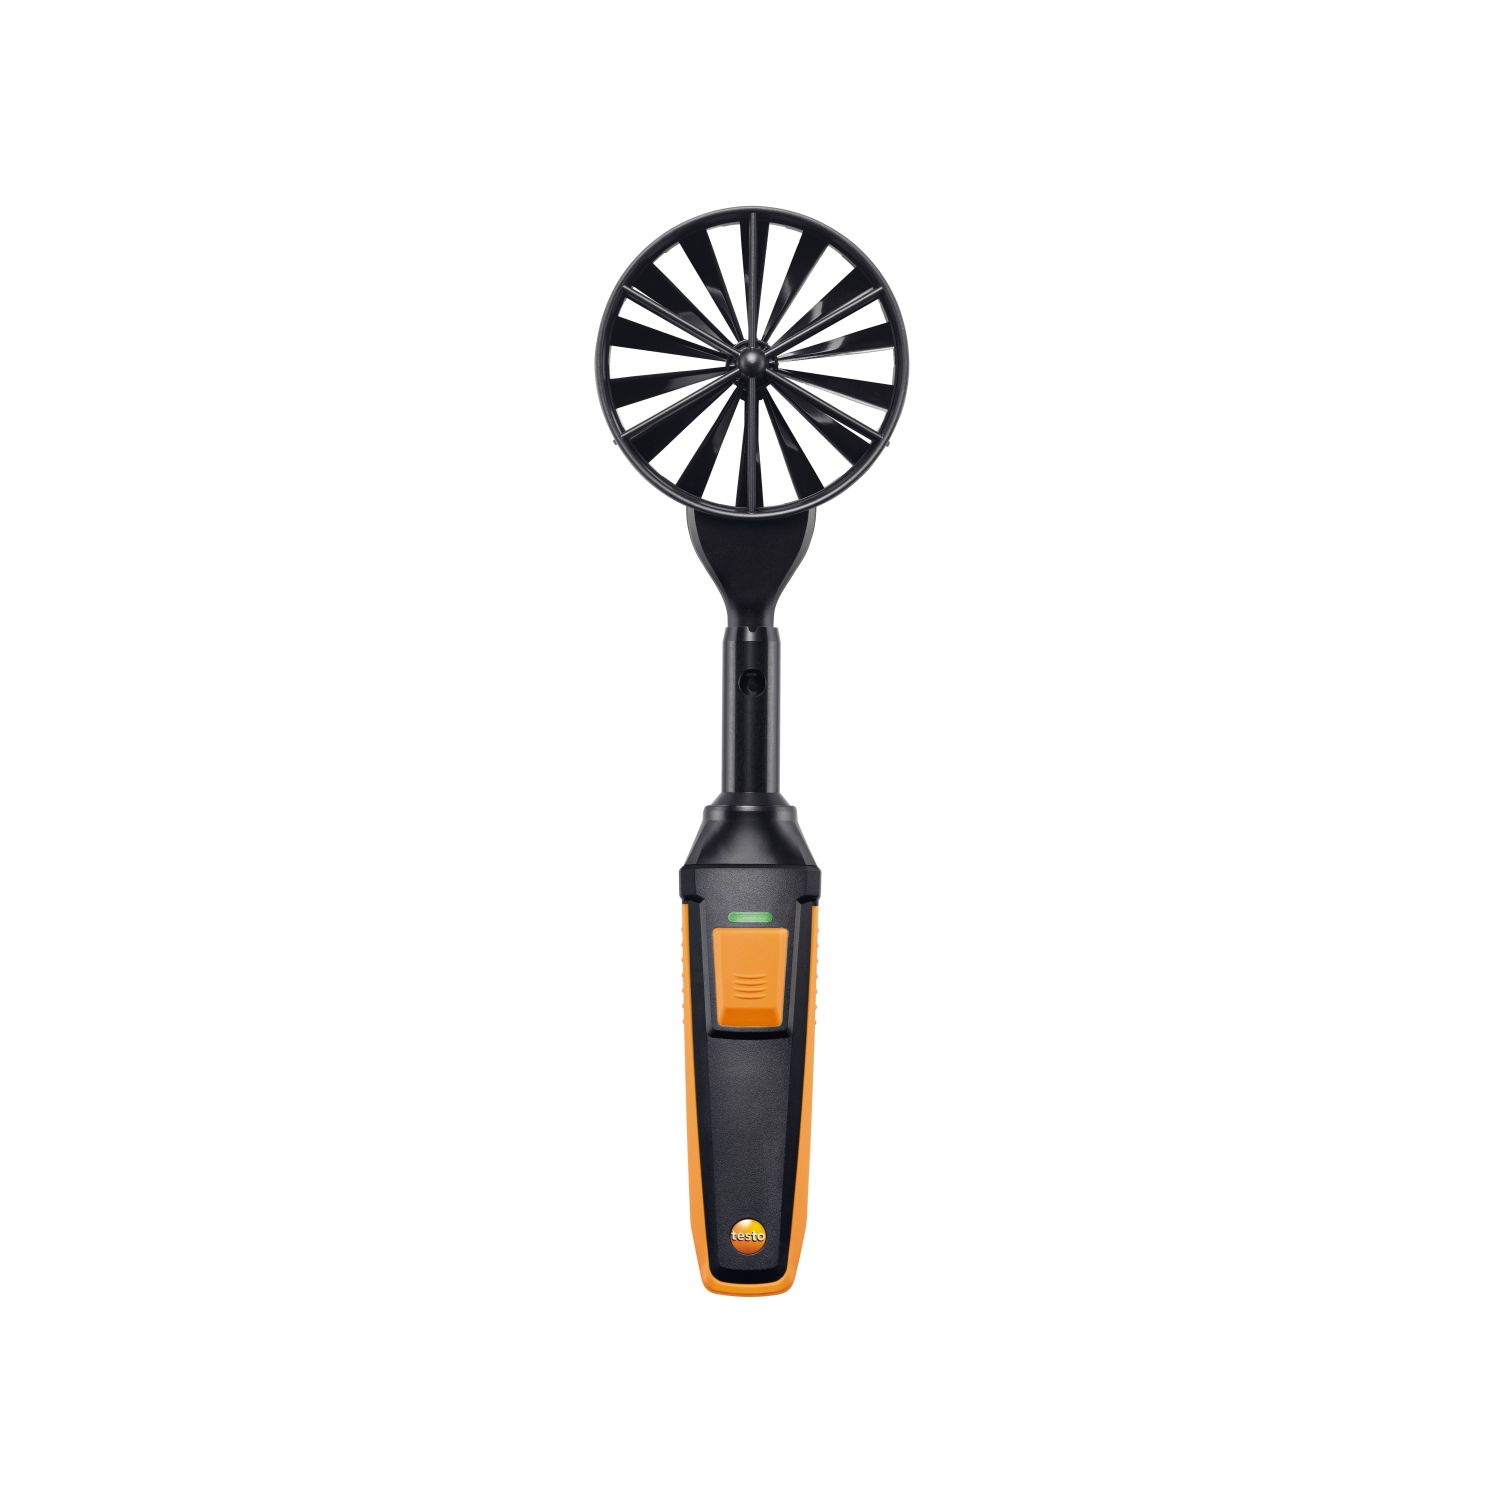 Testo 400 4 inch Vane Bluetooth probe with temperature